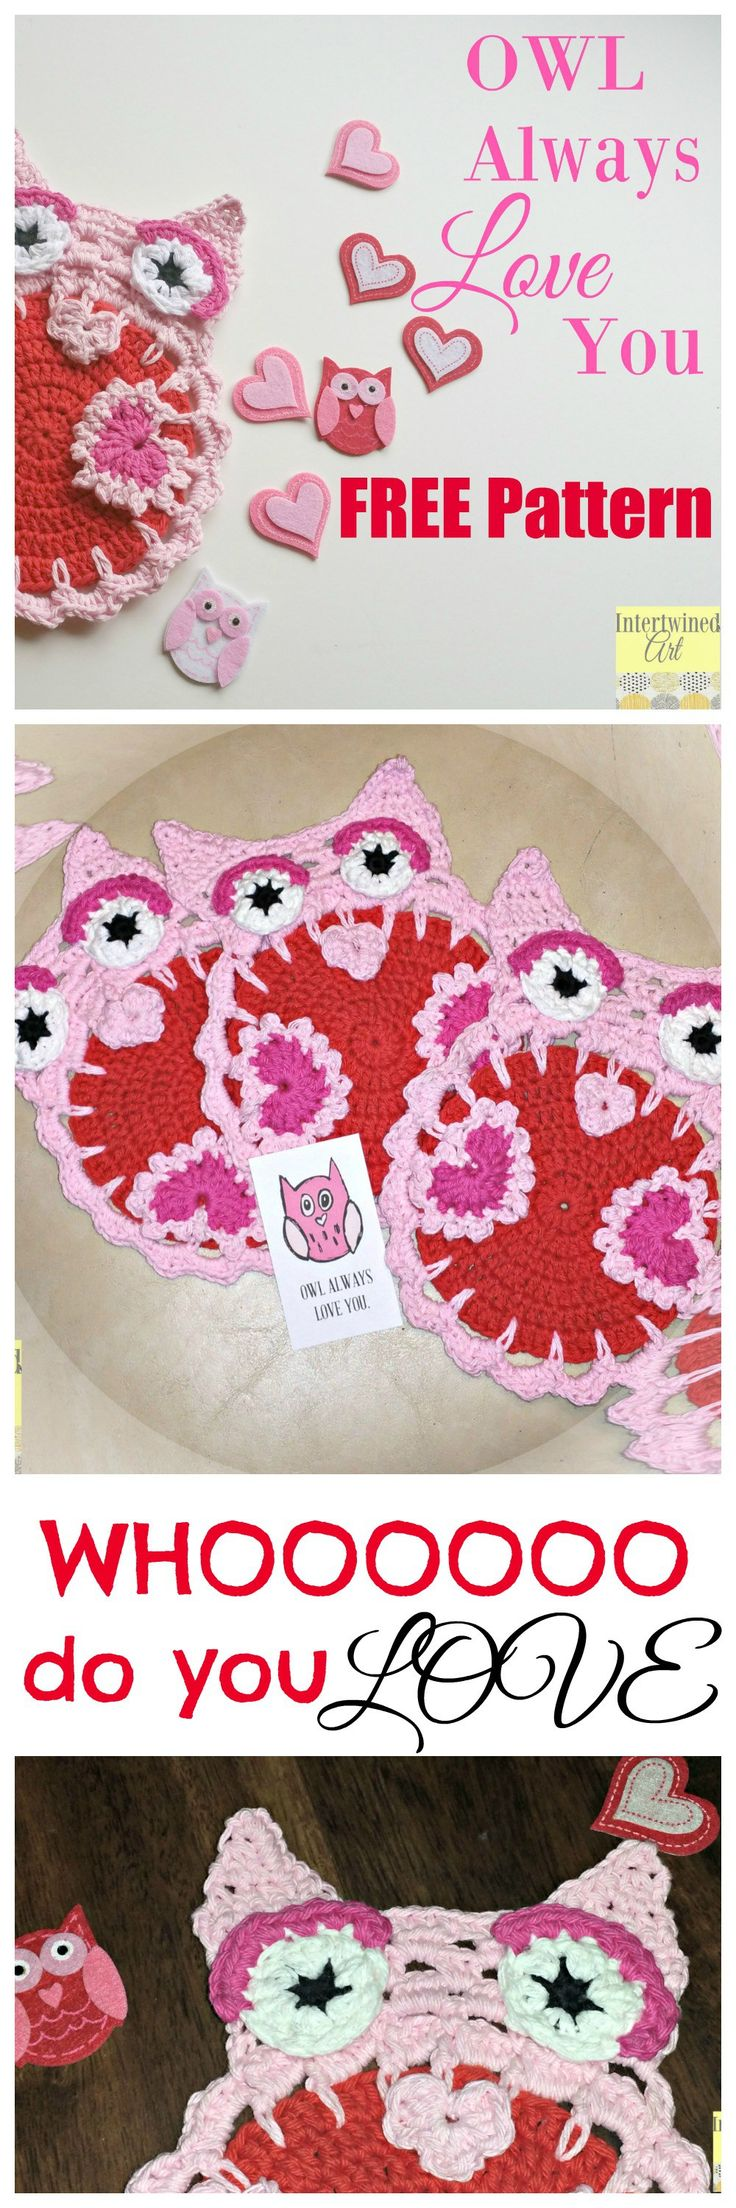 354 best owls images on pinterest appliques amigurumi and crafts owl always love you crochet owl dishcloth bankloansurffo Gallery